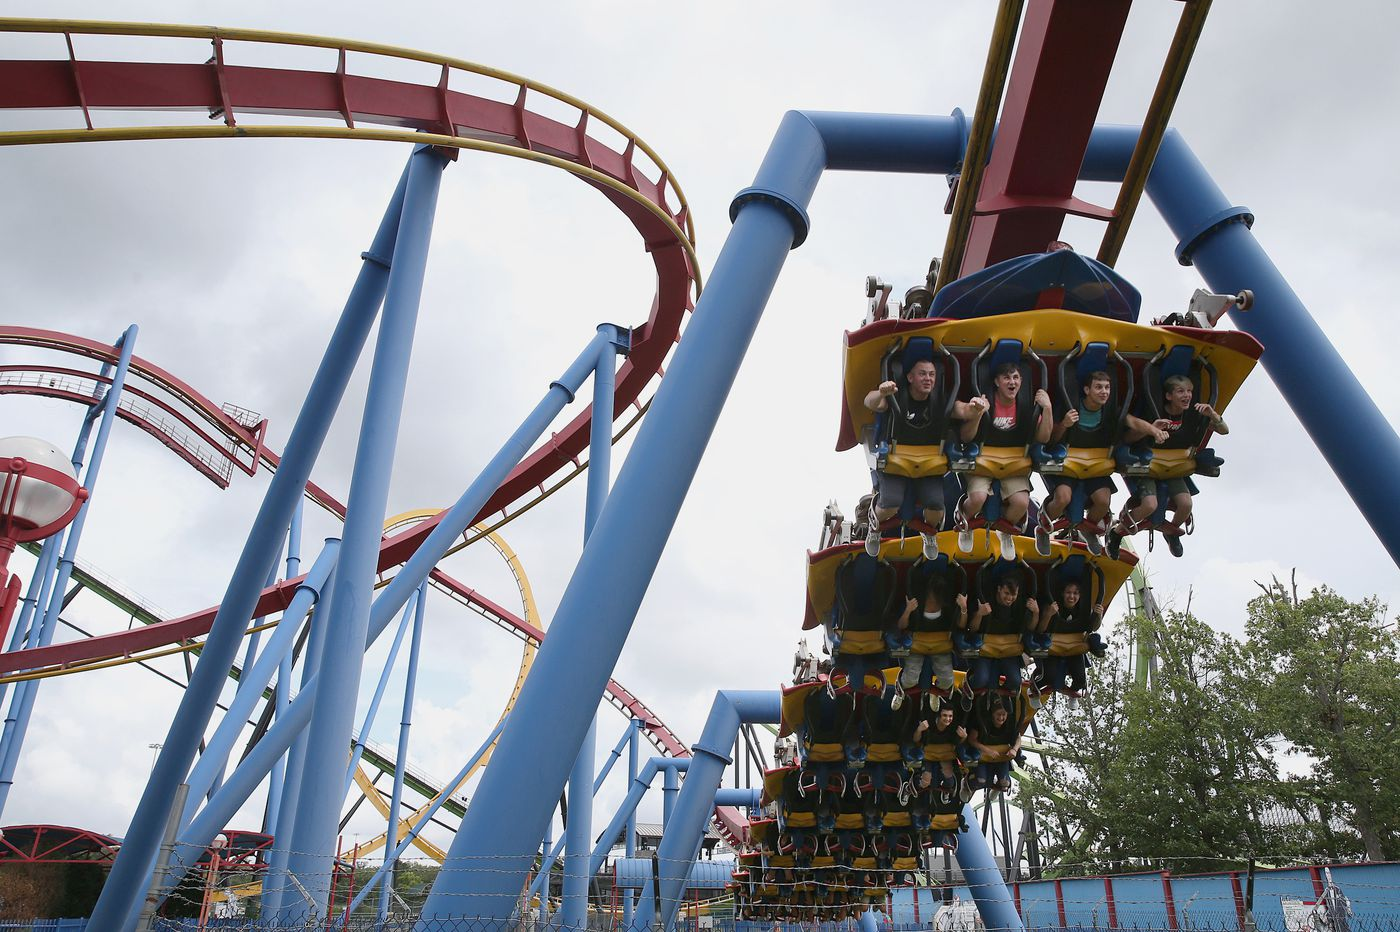 From thrilling to nauseating: We rode all 12 roller-coasters at Six Flags to find out which were the best